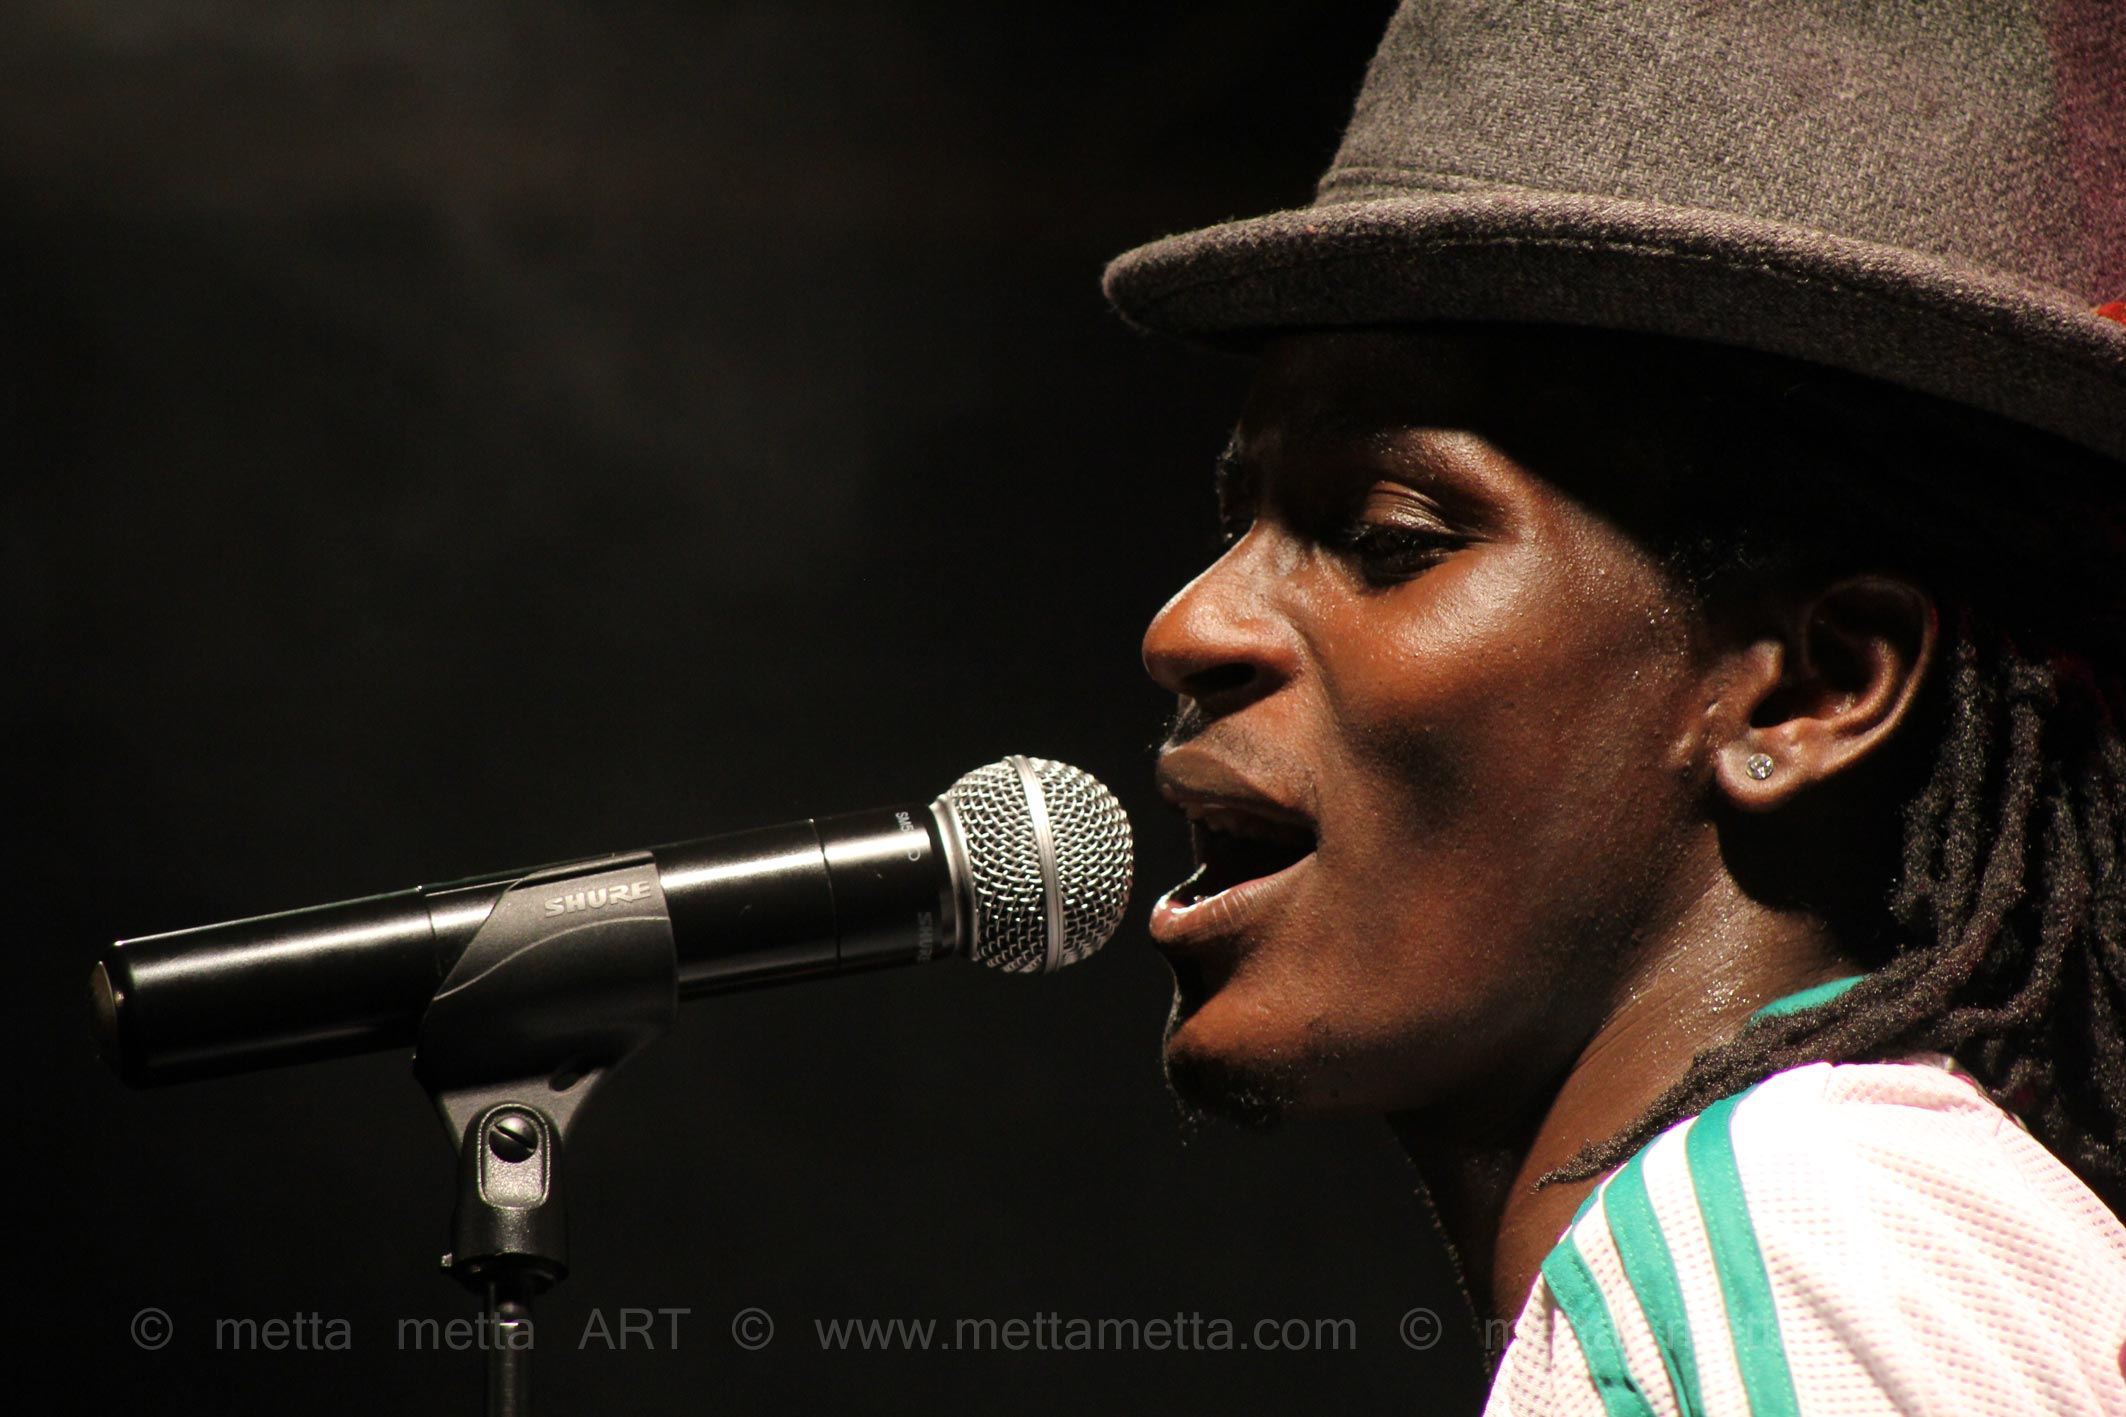 Dan Aceda - photo by Metta